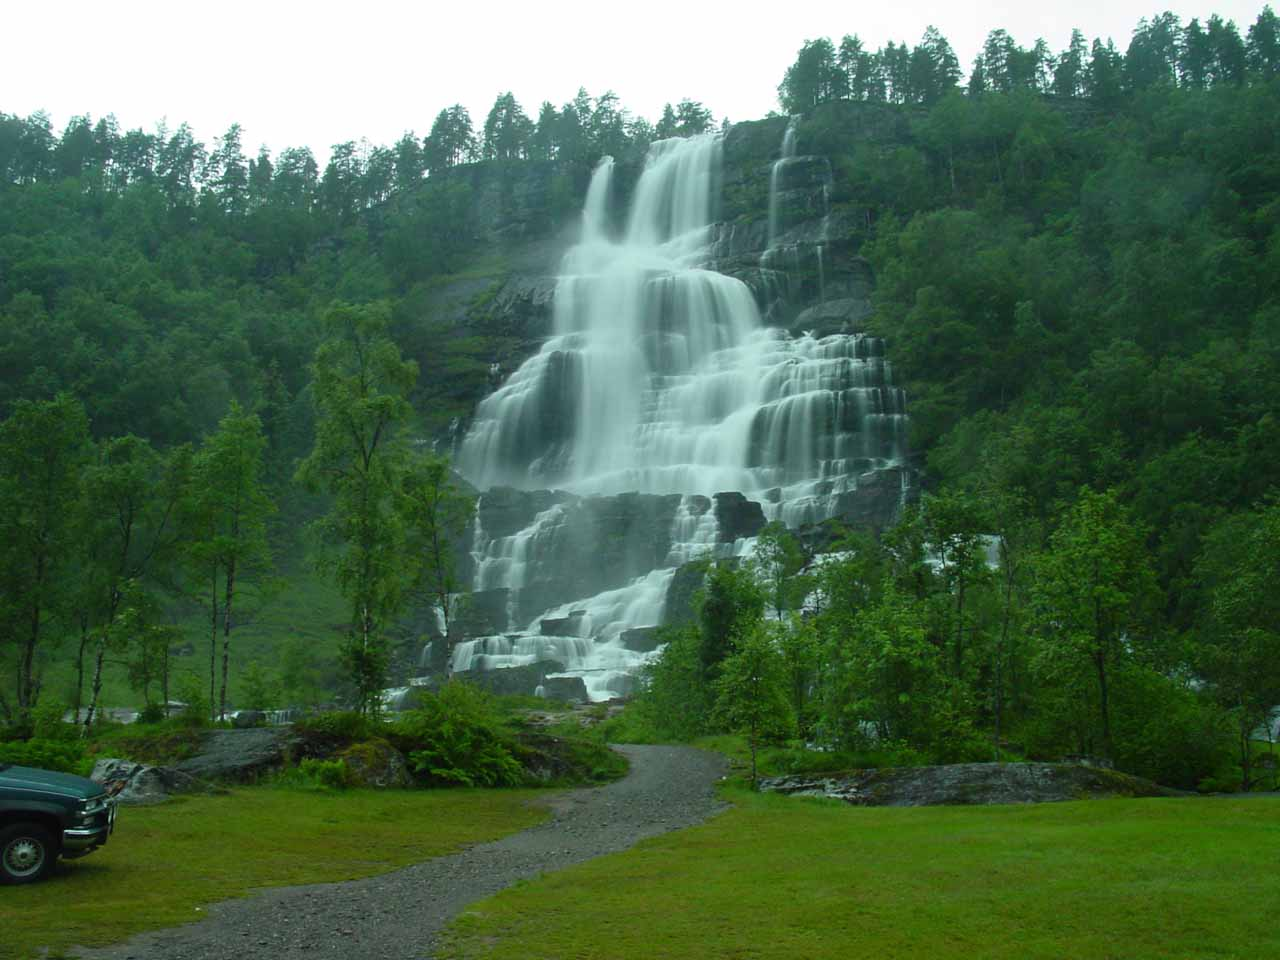 Full context of Tvindefossen with someone else's car parked